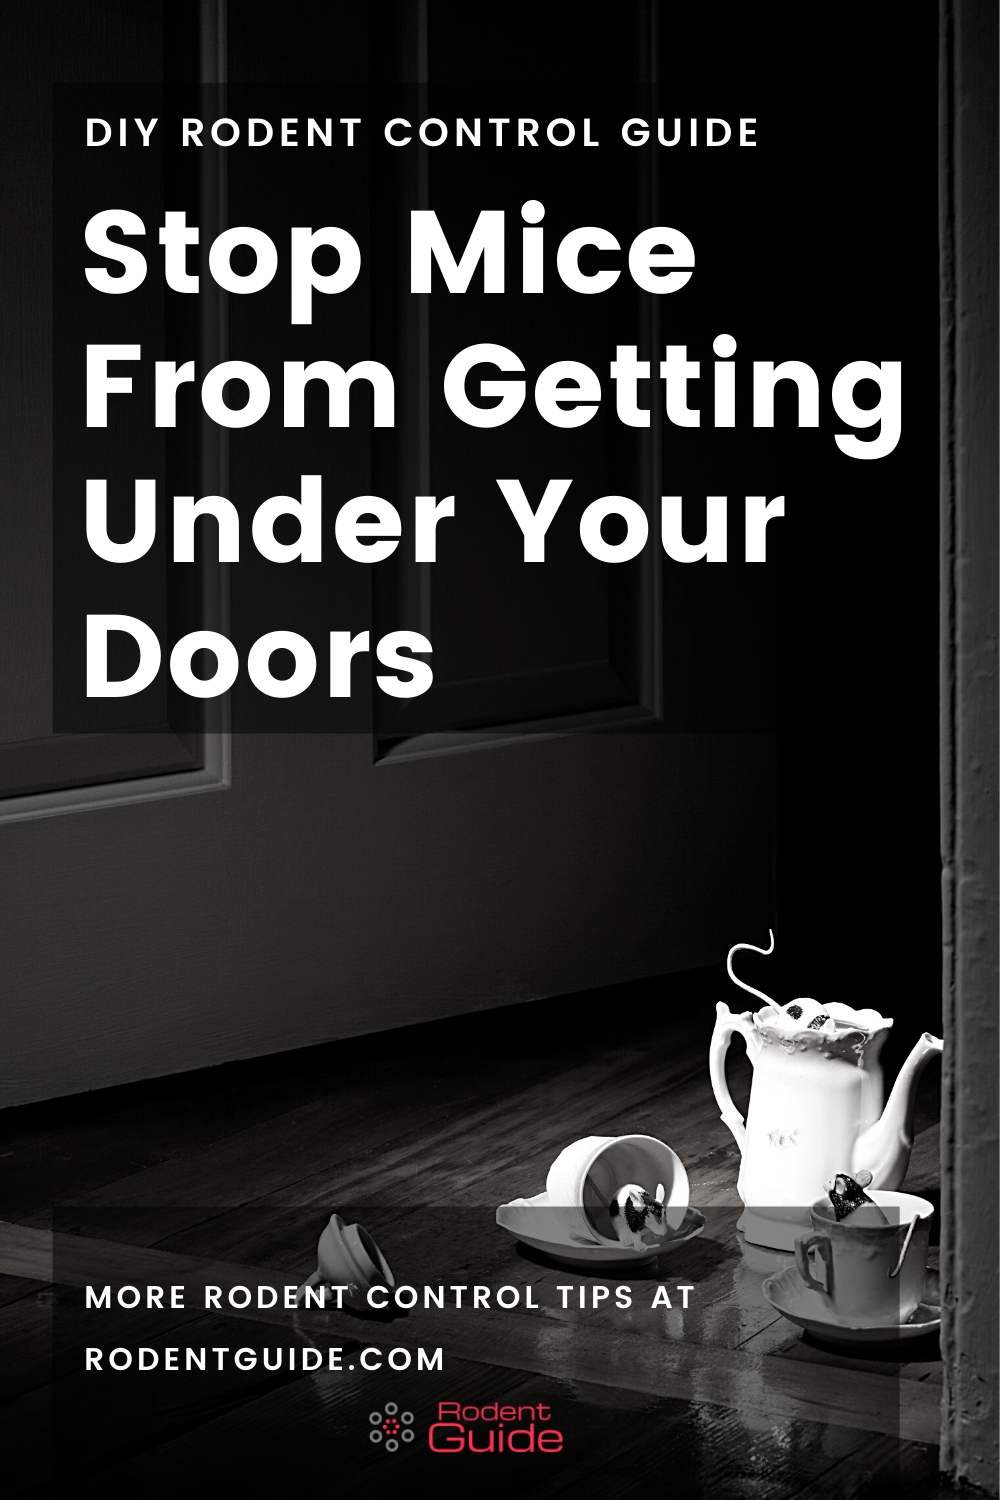 Stop Mice From Getting Under Your Doors